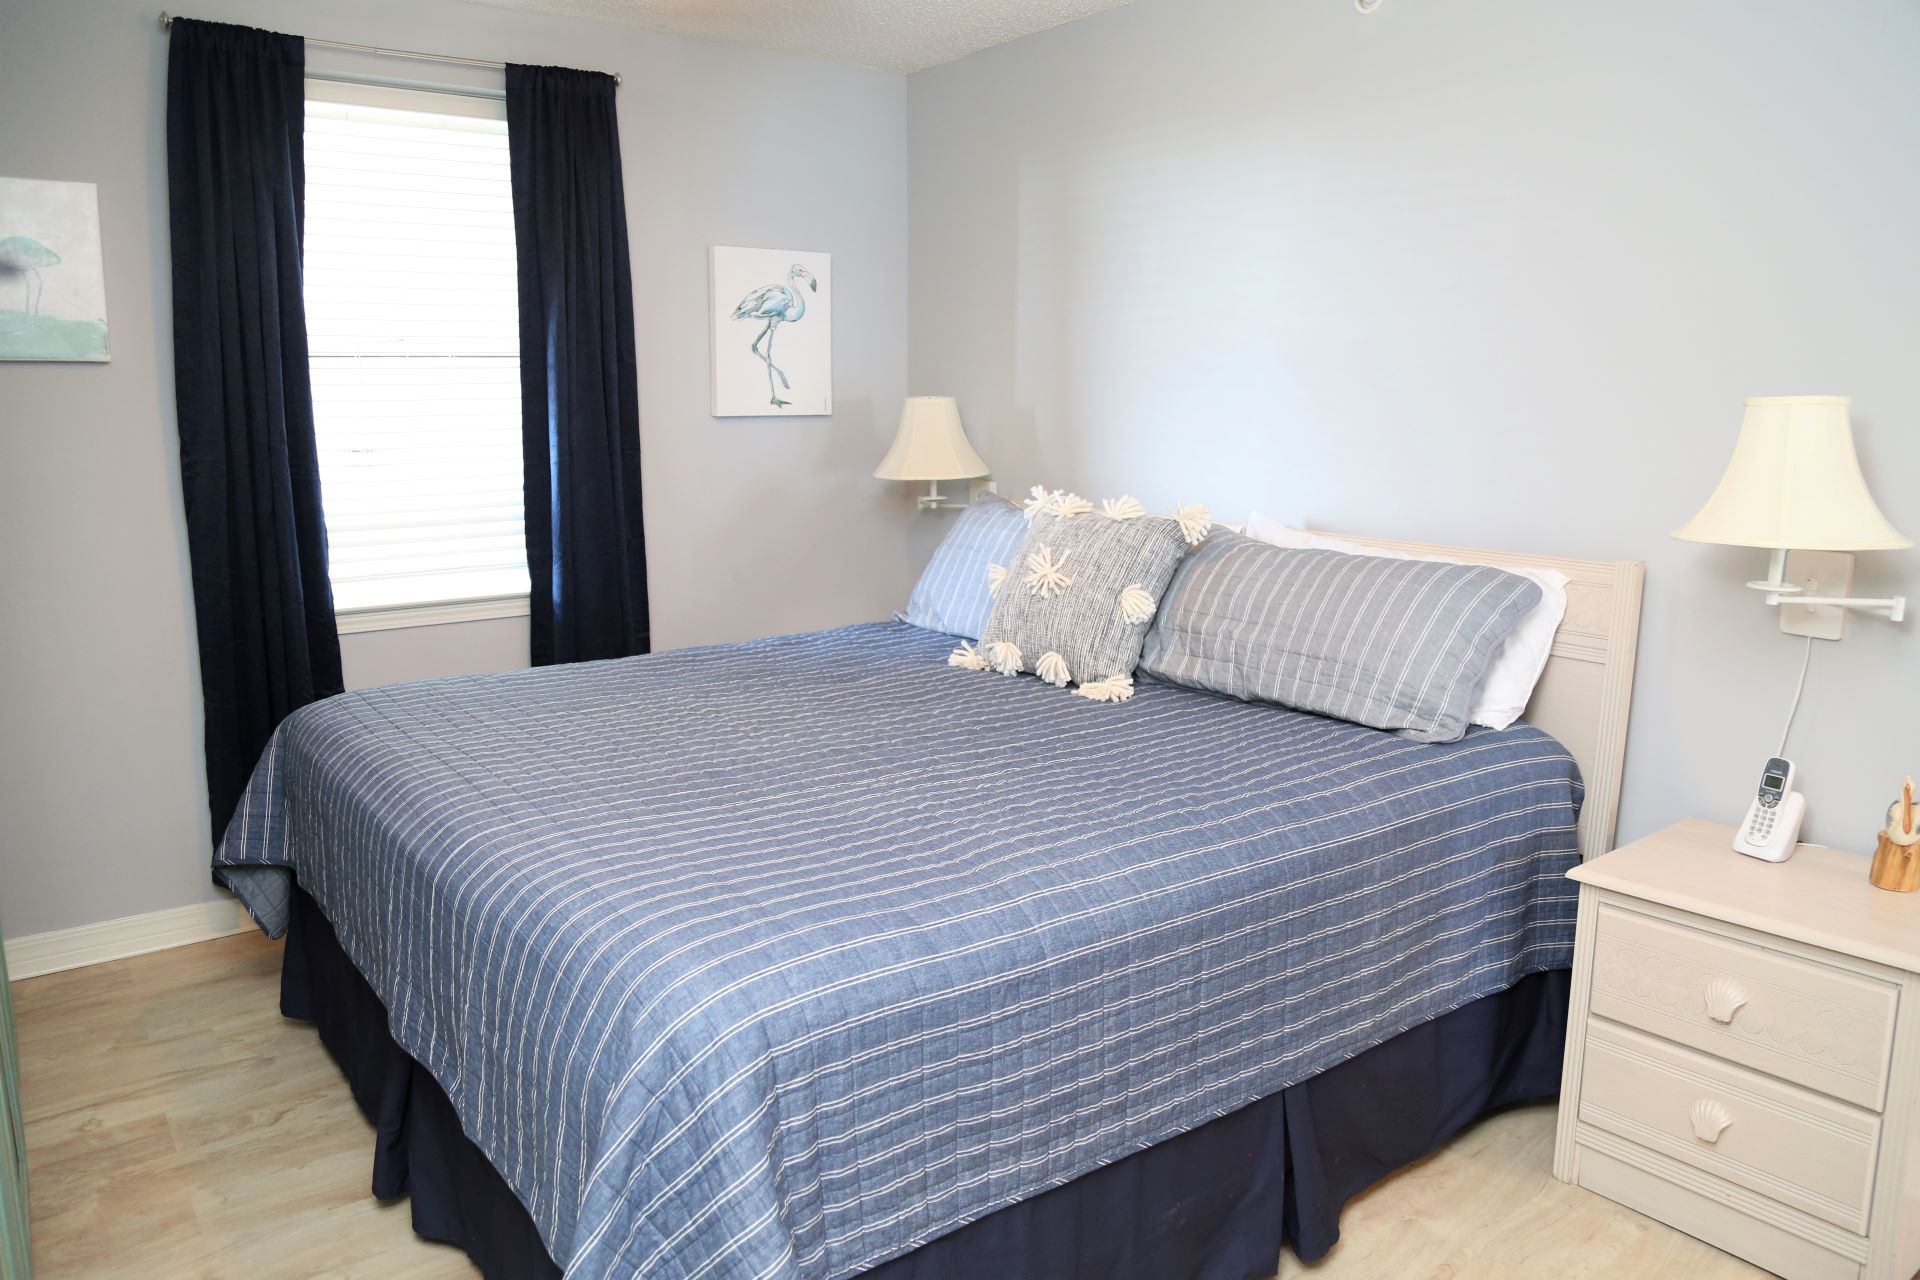 The master bedroom includes a comfortable king-sized bed.